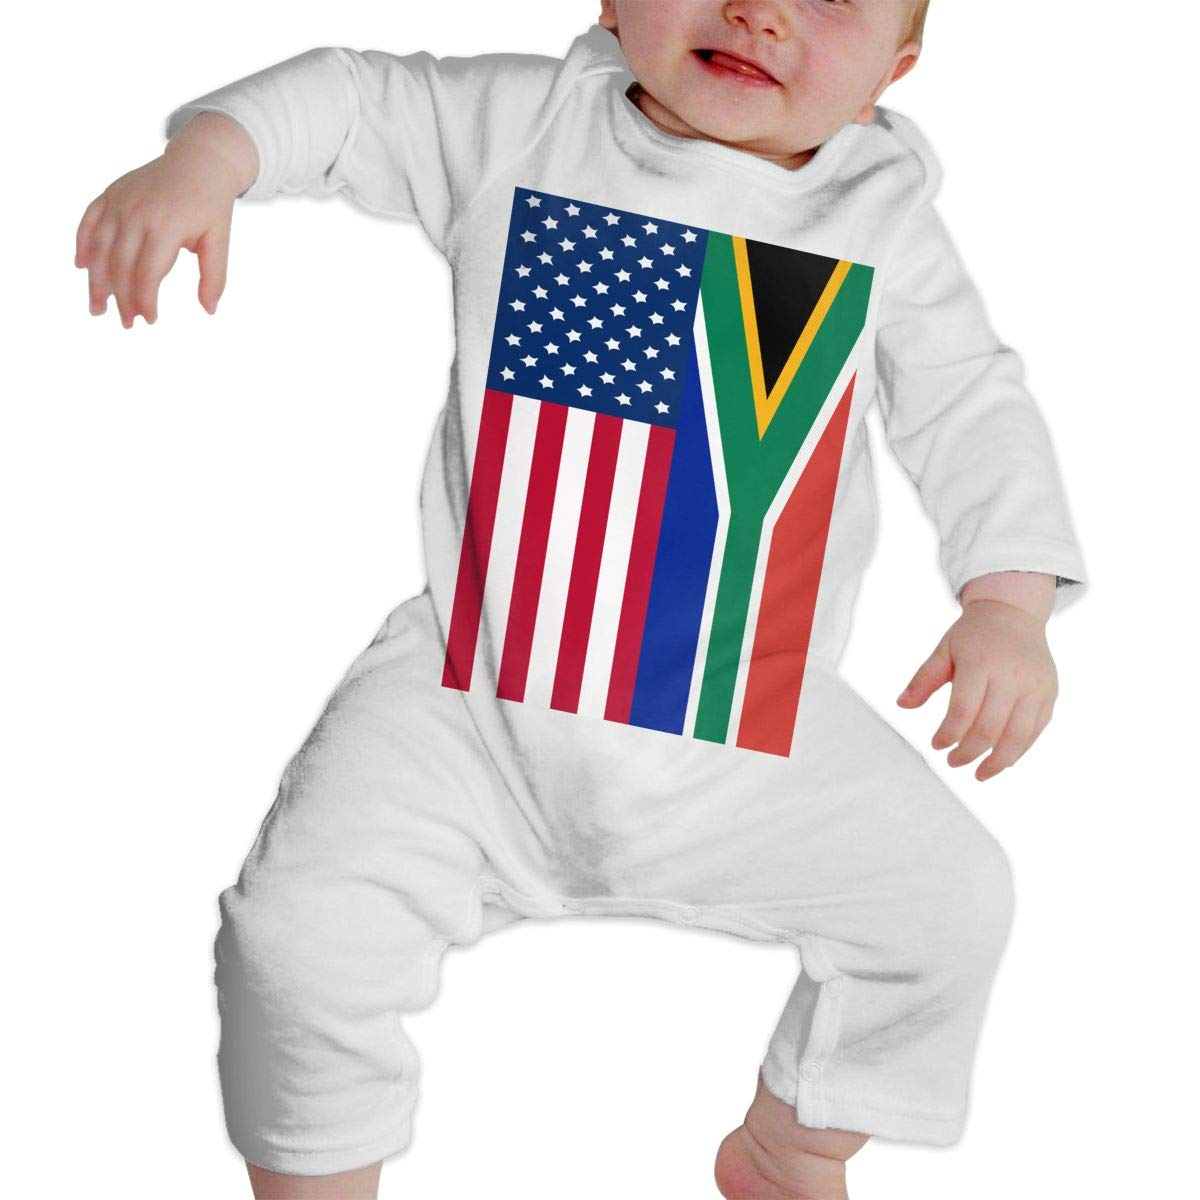 A1BY-5US Baby Infant Toddler Cotton Long Sleeve South Africa and American Flag Baby Clothes One-Piece Romper Clothes